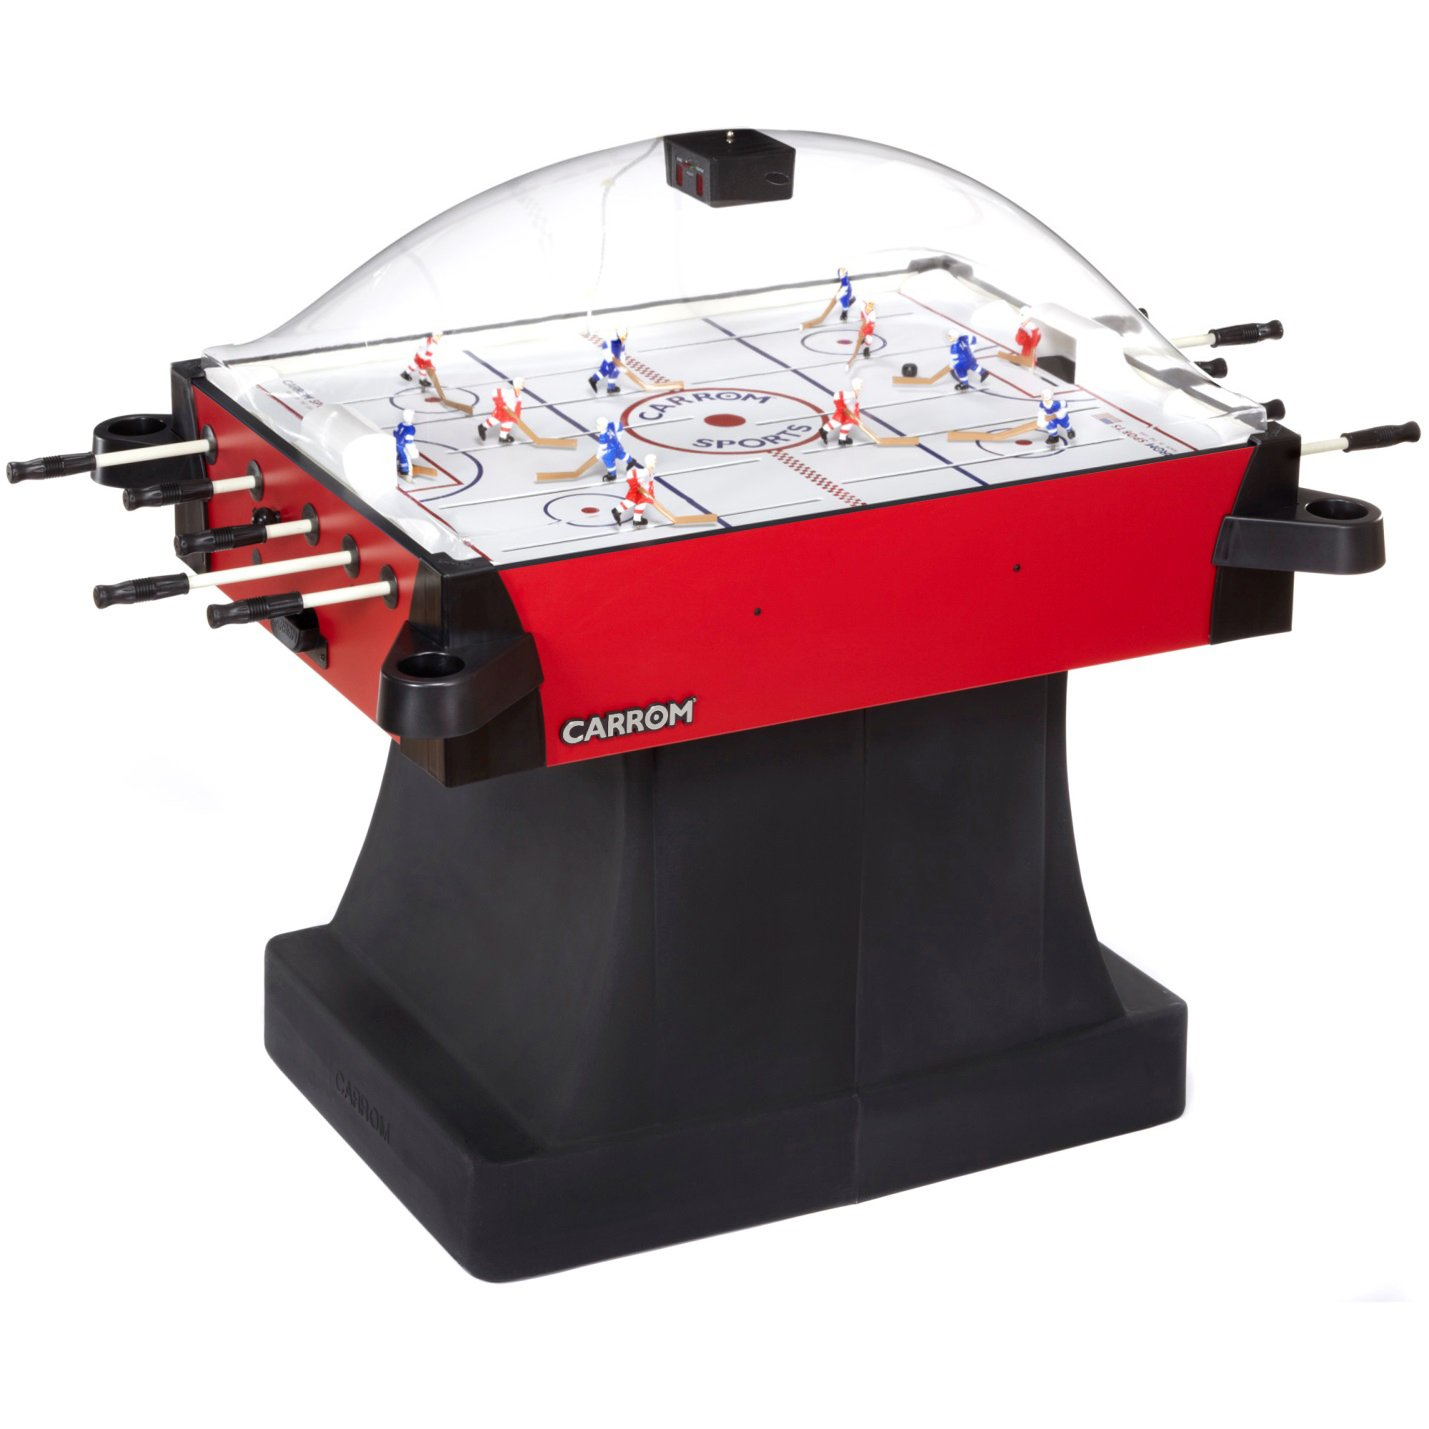 Carrom 425.01 Signature Stick Hockey Table with Pedestal (Red) by Carrom